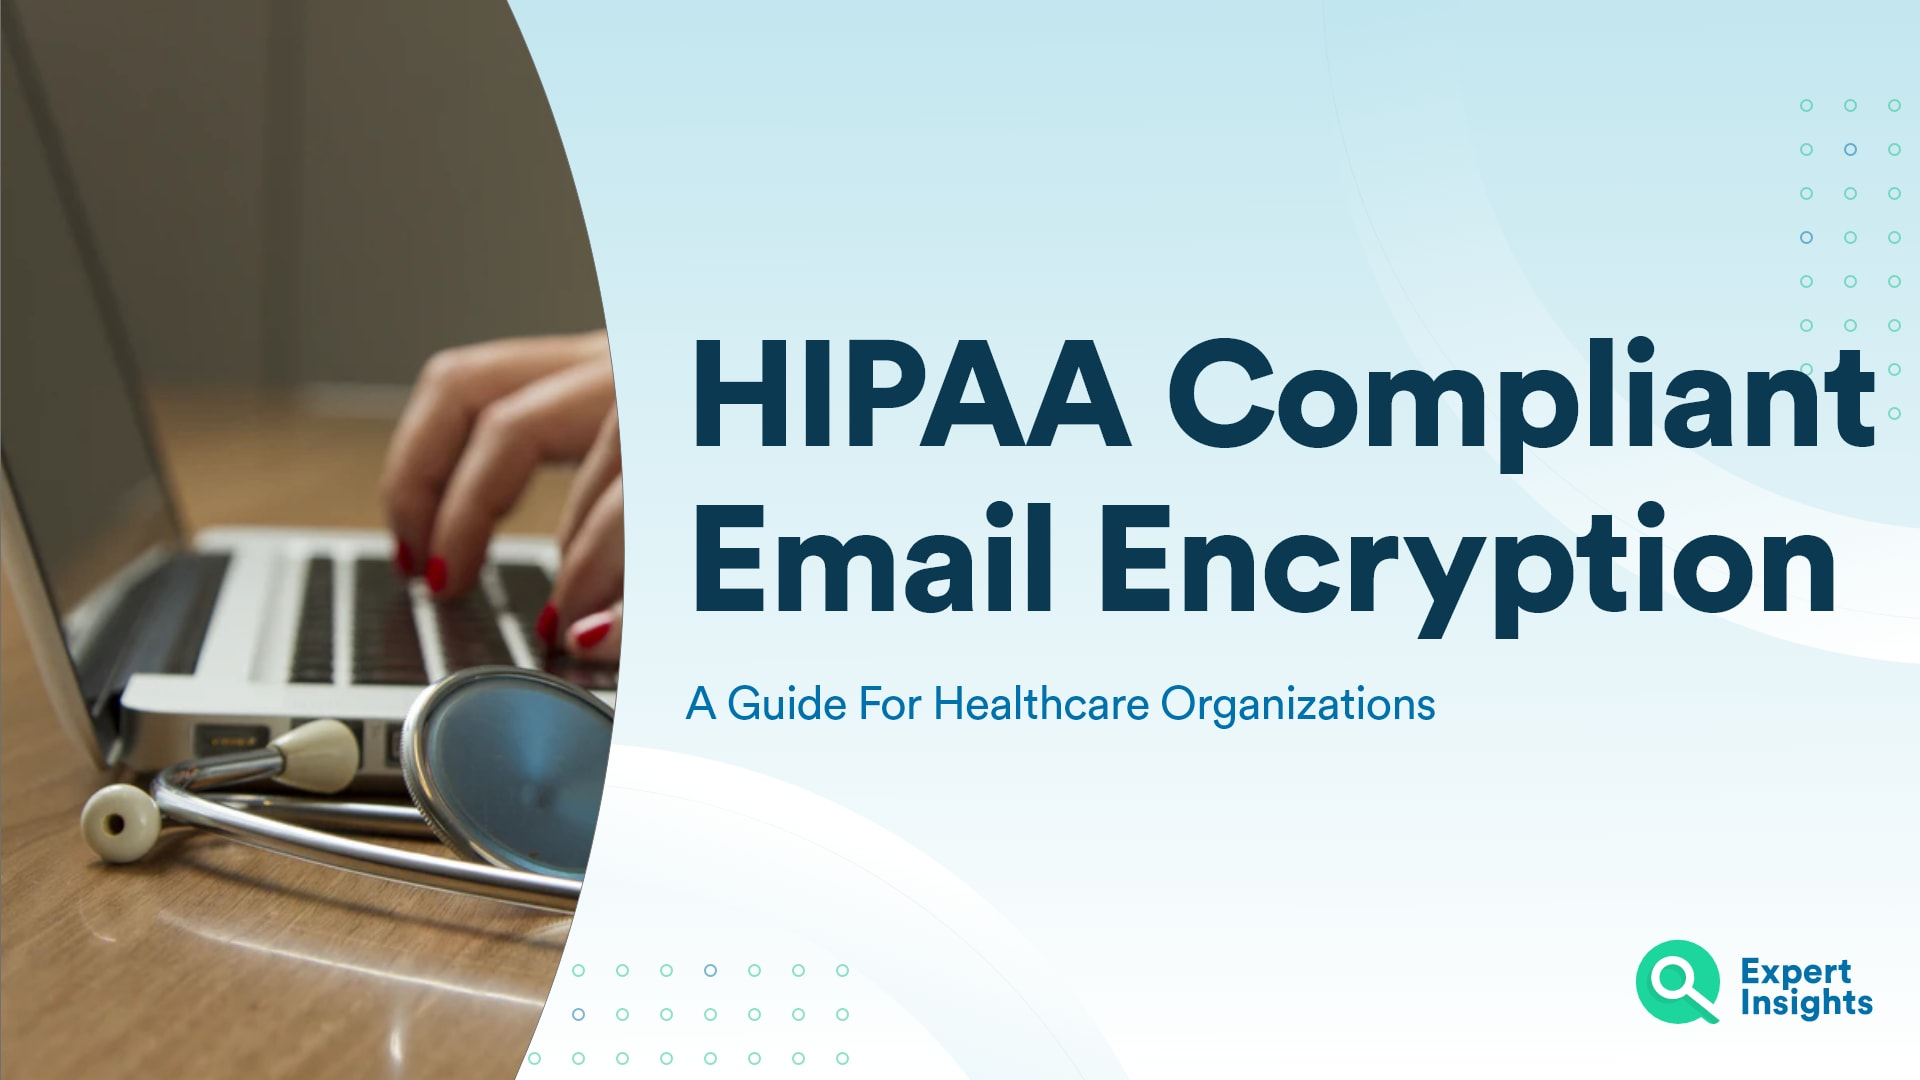 HIPAA Compliant Email Encryption: A Guide For Healthcare Organizations - Expert Insights